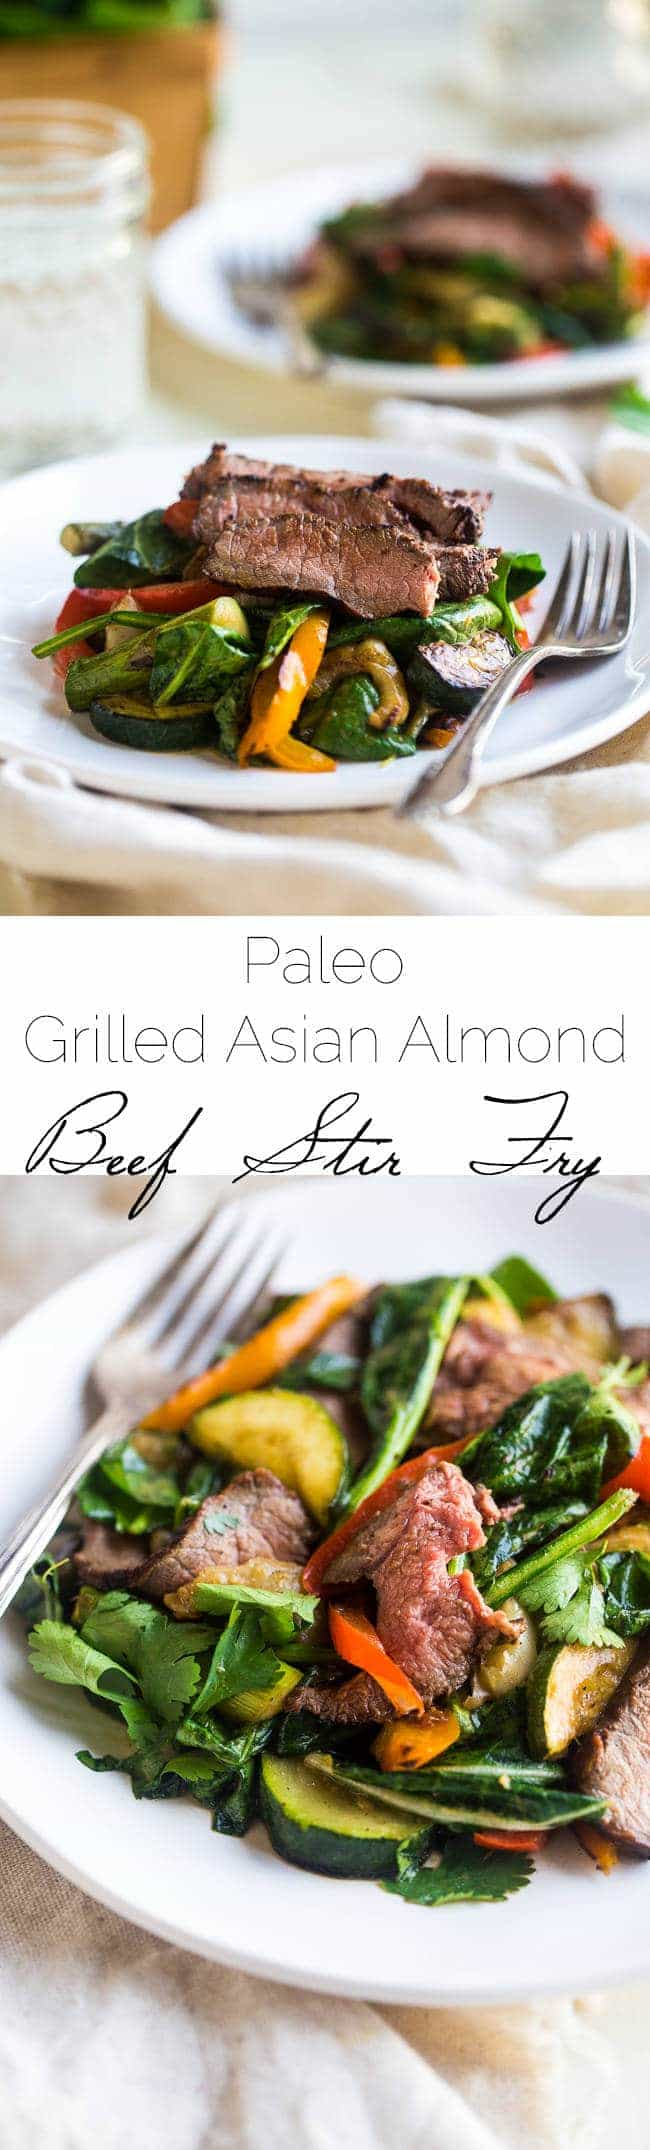 Paleo Grilled Beef Stir Fry with Asian Almond Dressing- Beef and veggies are grilled and then tossed with a creamy Asian almond butter vinaigrette and spinach for a quick and easy, healthy, Paleo-friendly meal! | Foodfaithfitness.com | @FoodFaithFit